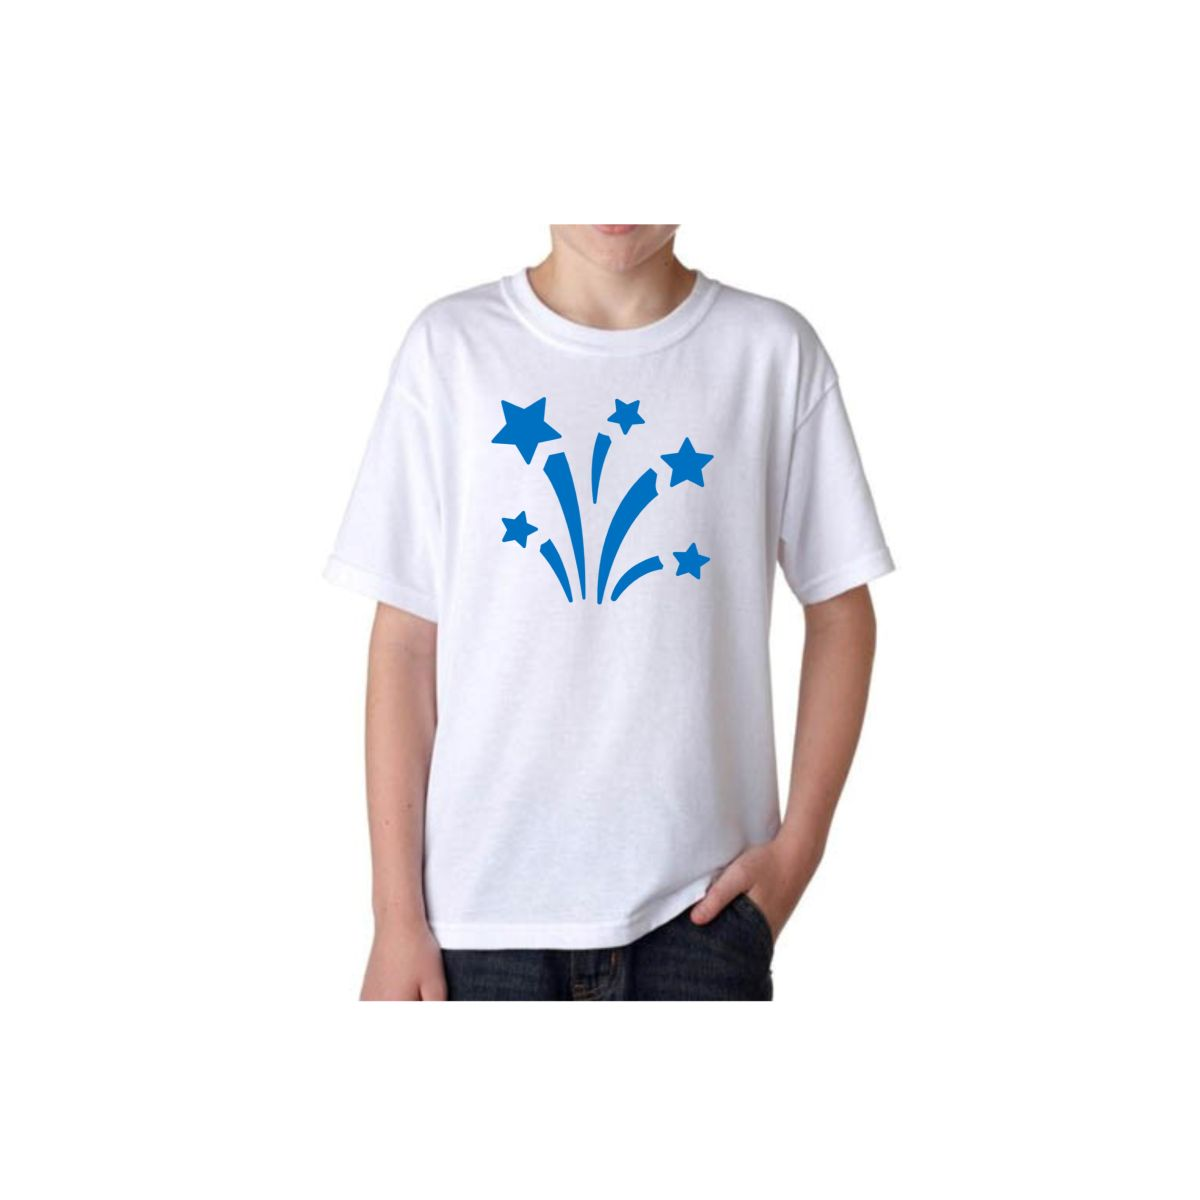 Kids T-Shirt White -MGL06272018-1